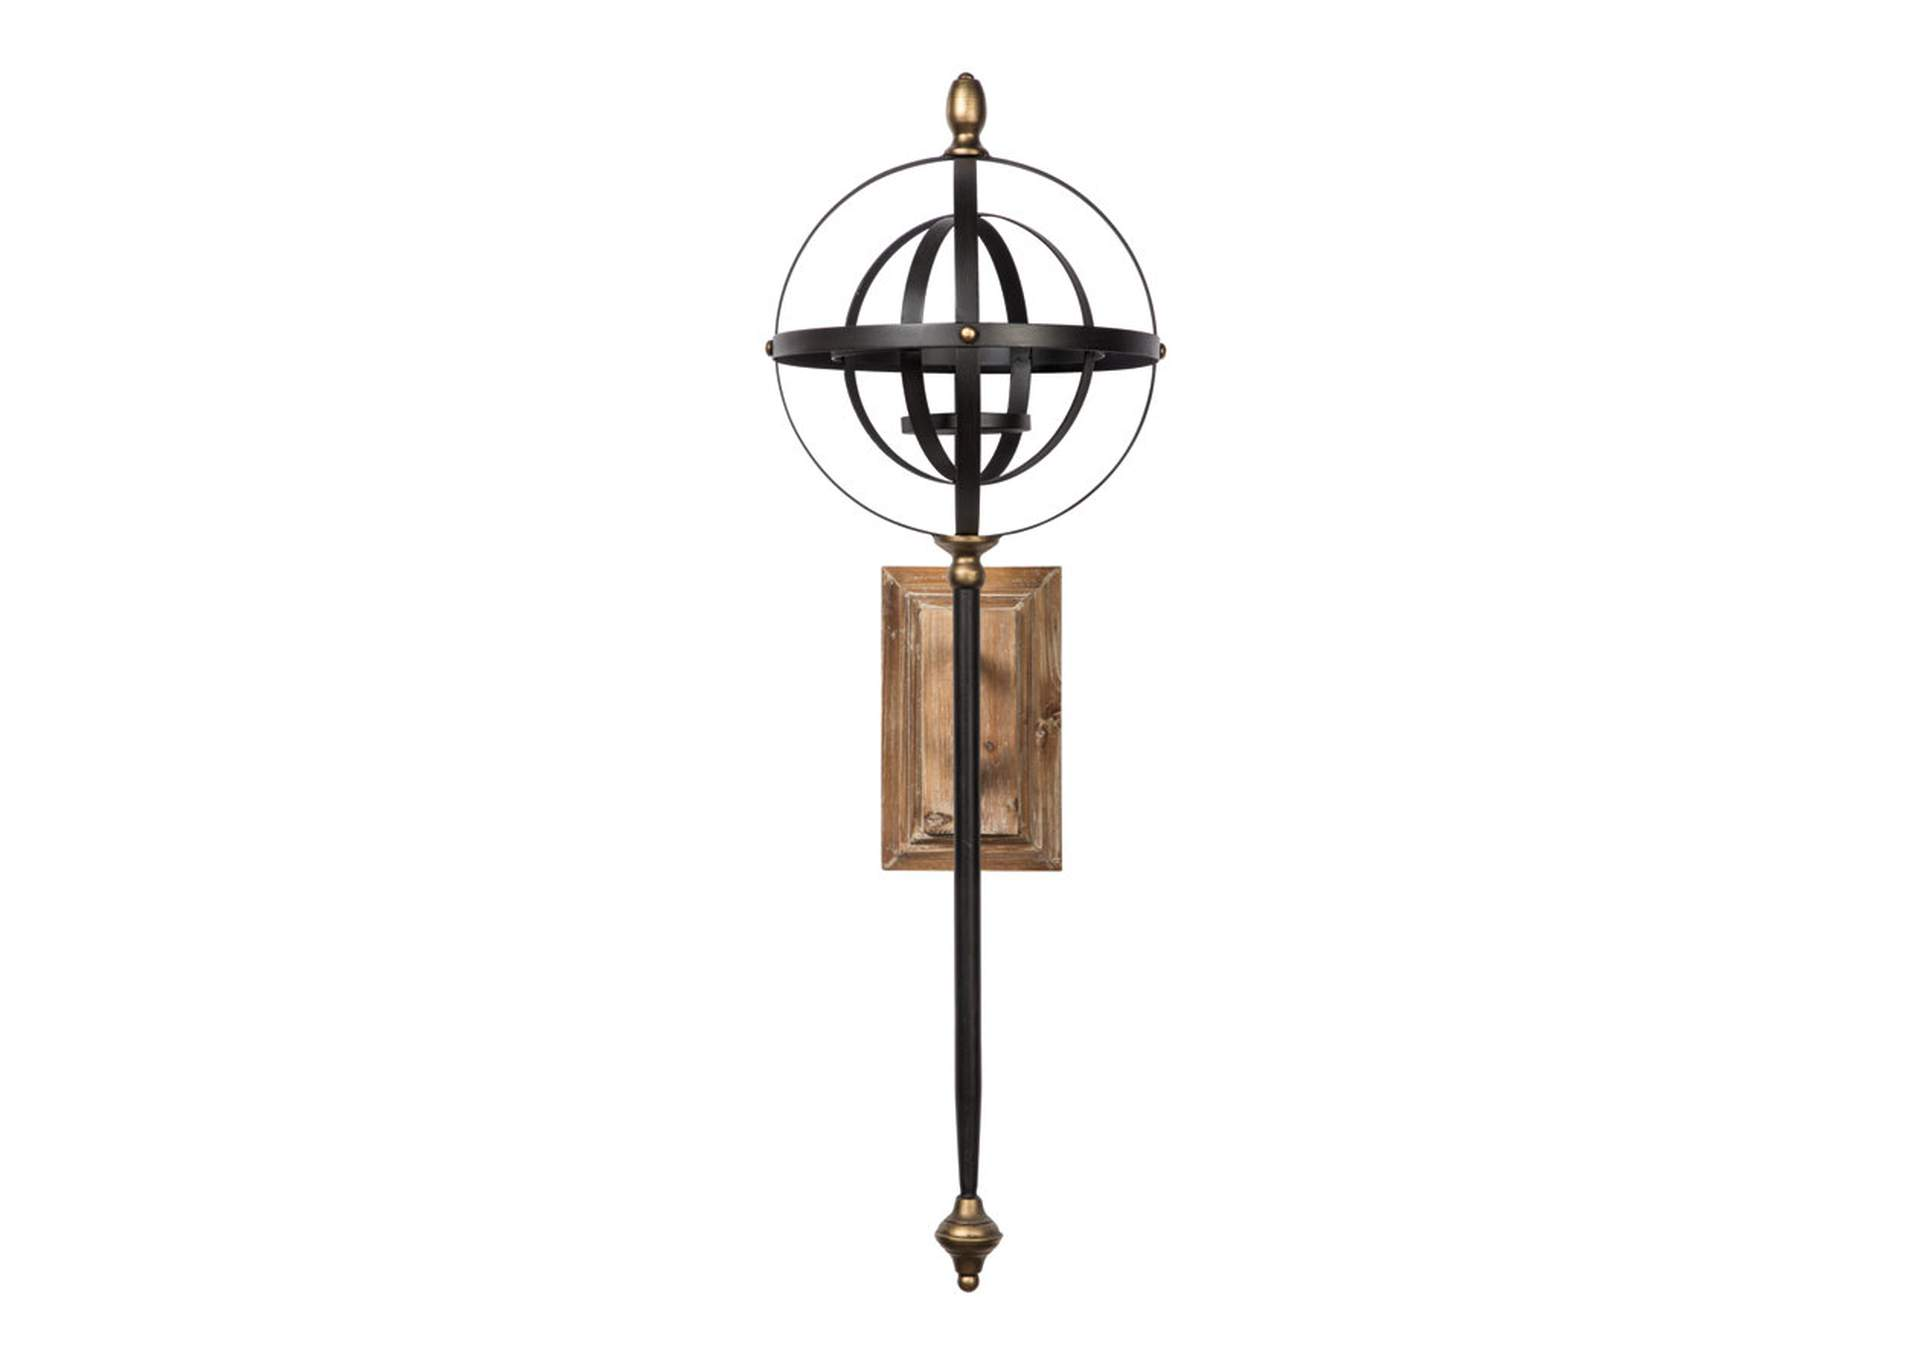 Dina Black/Gold Finish Wall Sconce,ABF Signature Design by Ashley